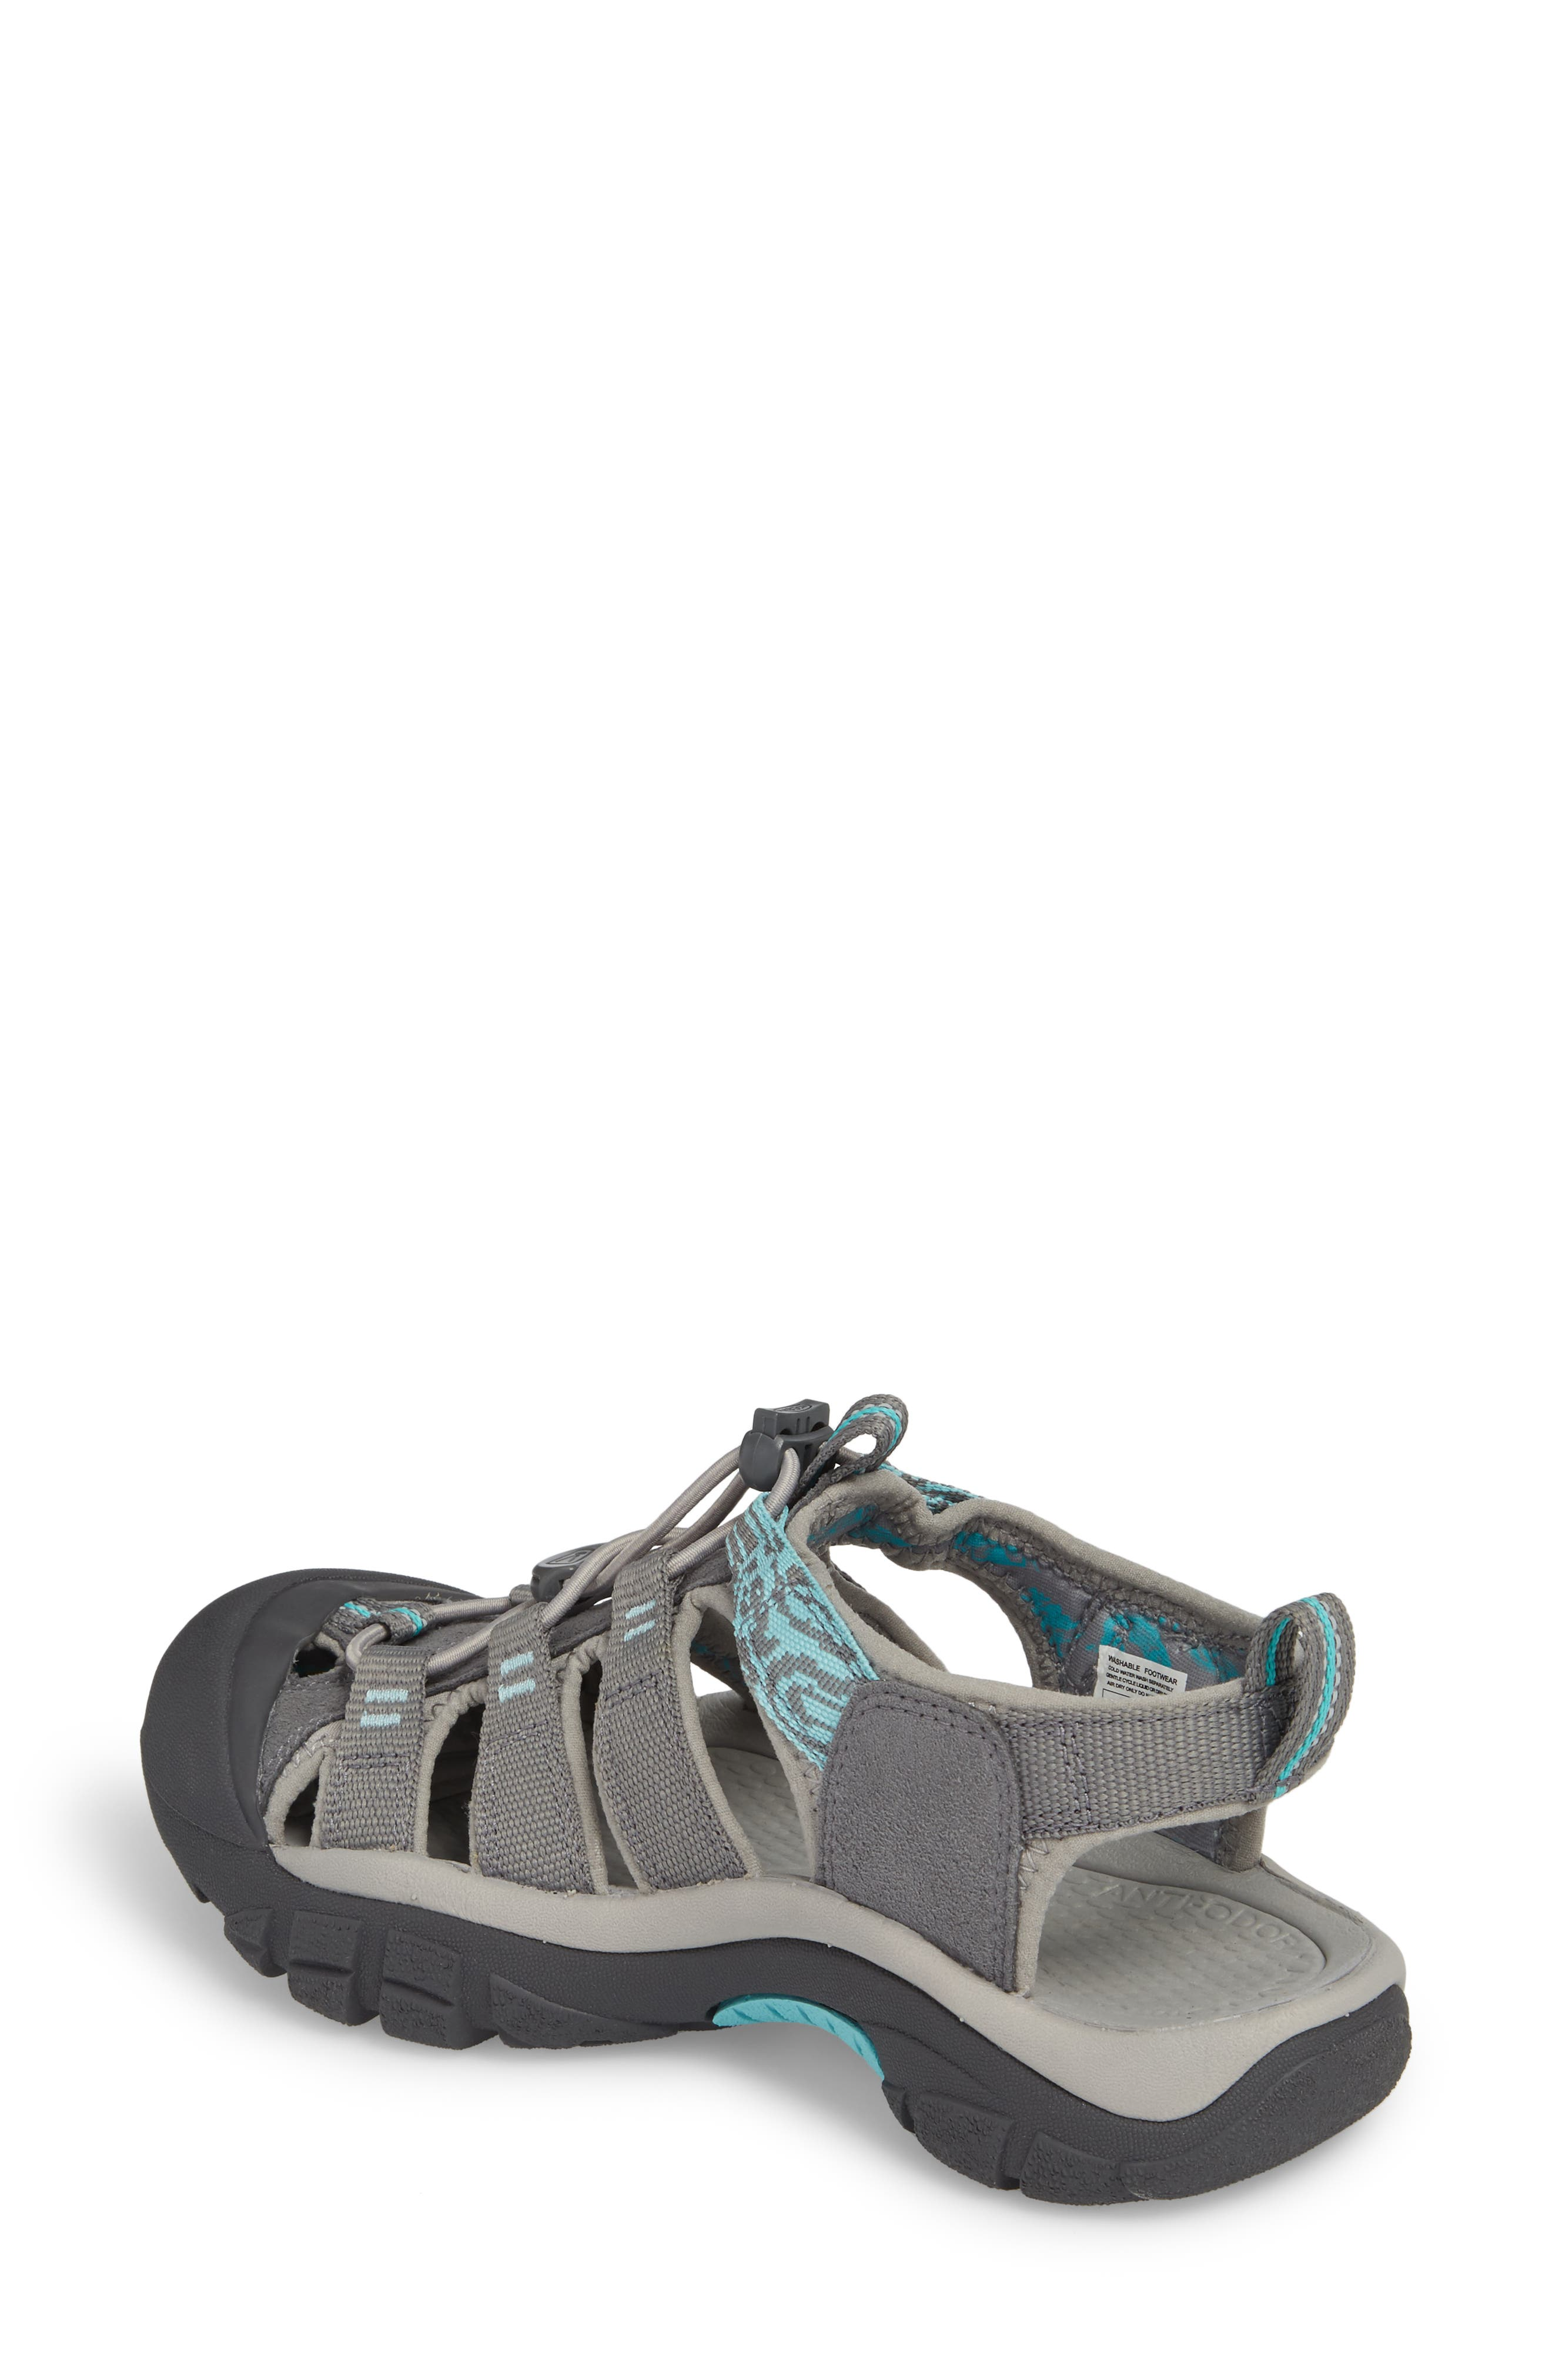 Newport Hydro Sandal,                             Alternate thumbnail 2, color,                             Steel Grey/ Blue Turquoise